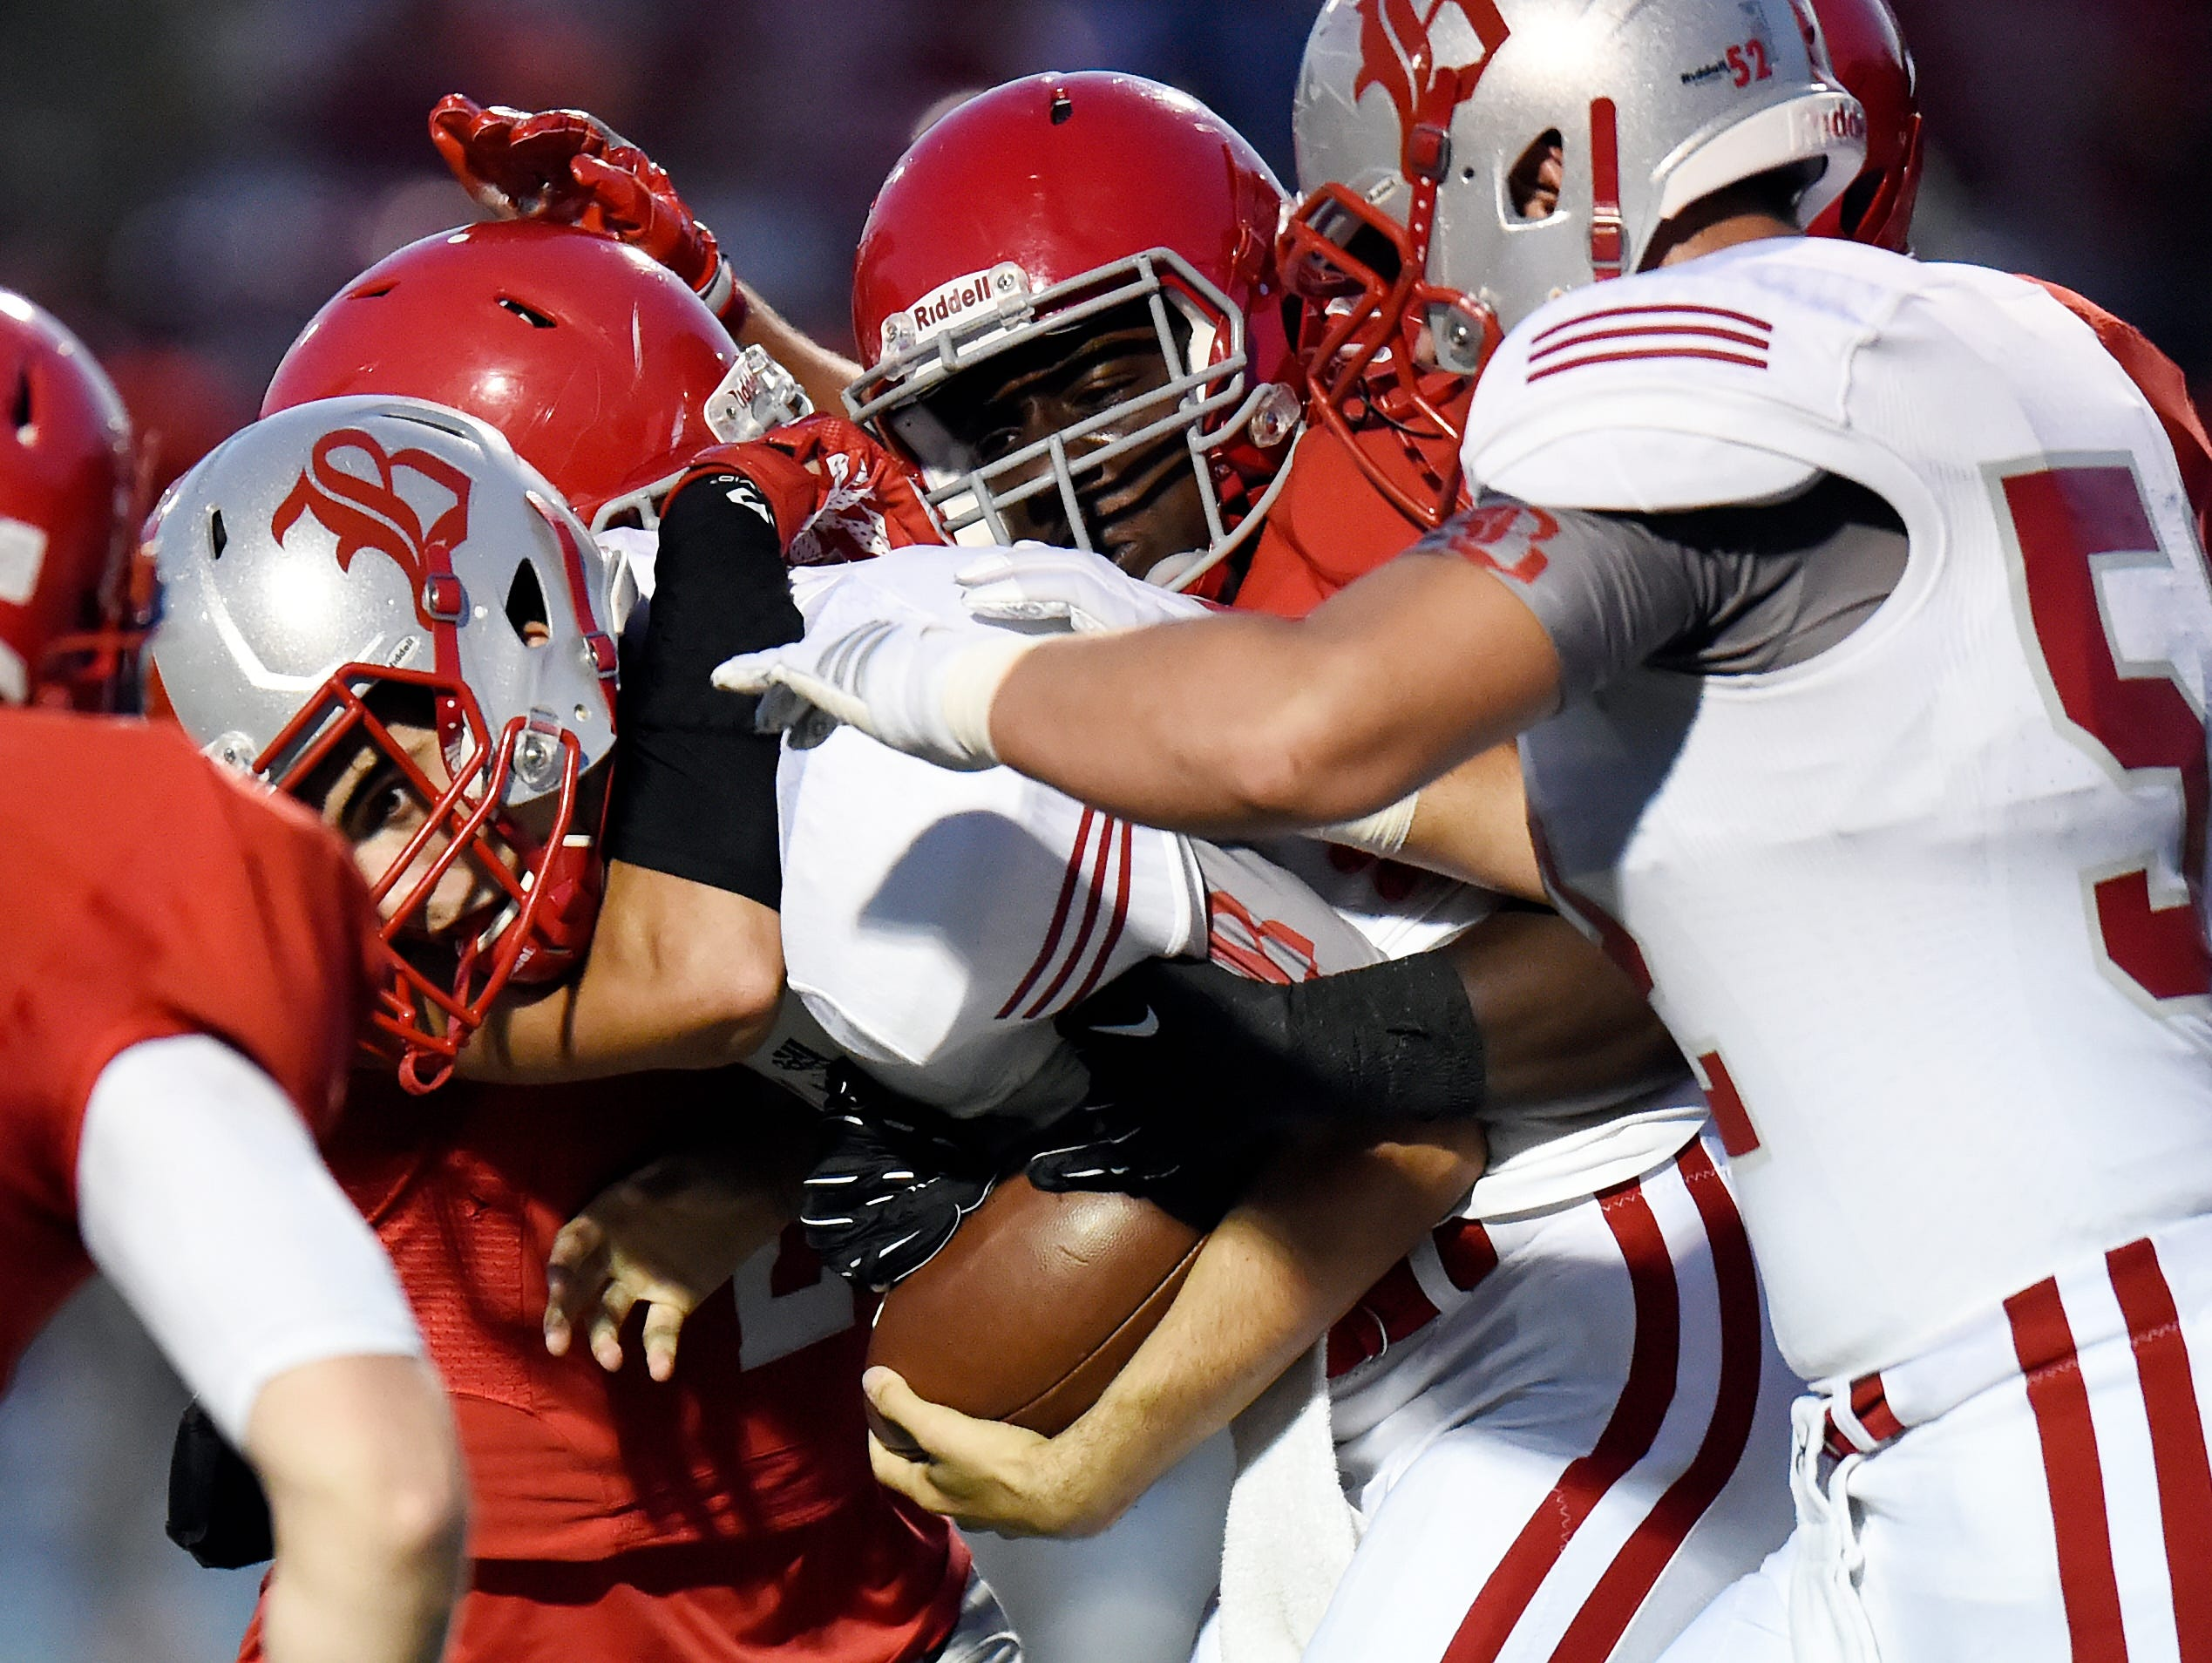 Baylor quarterback Lorenzo White, center, is sacked by Brentwood Academy defenders during first half of an high school football game on Friday, Sept. 16, 2016, in Brentwood, Tenn.